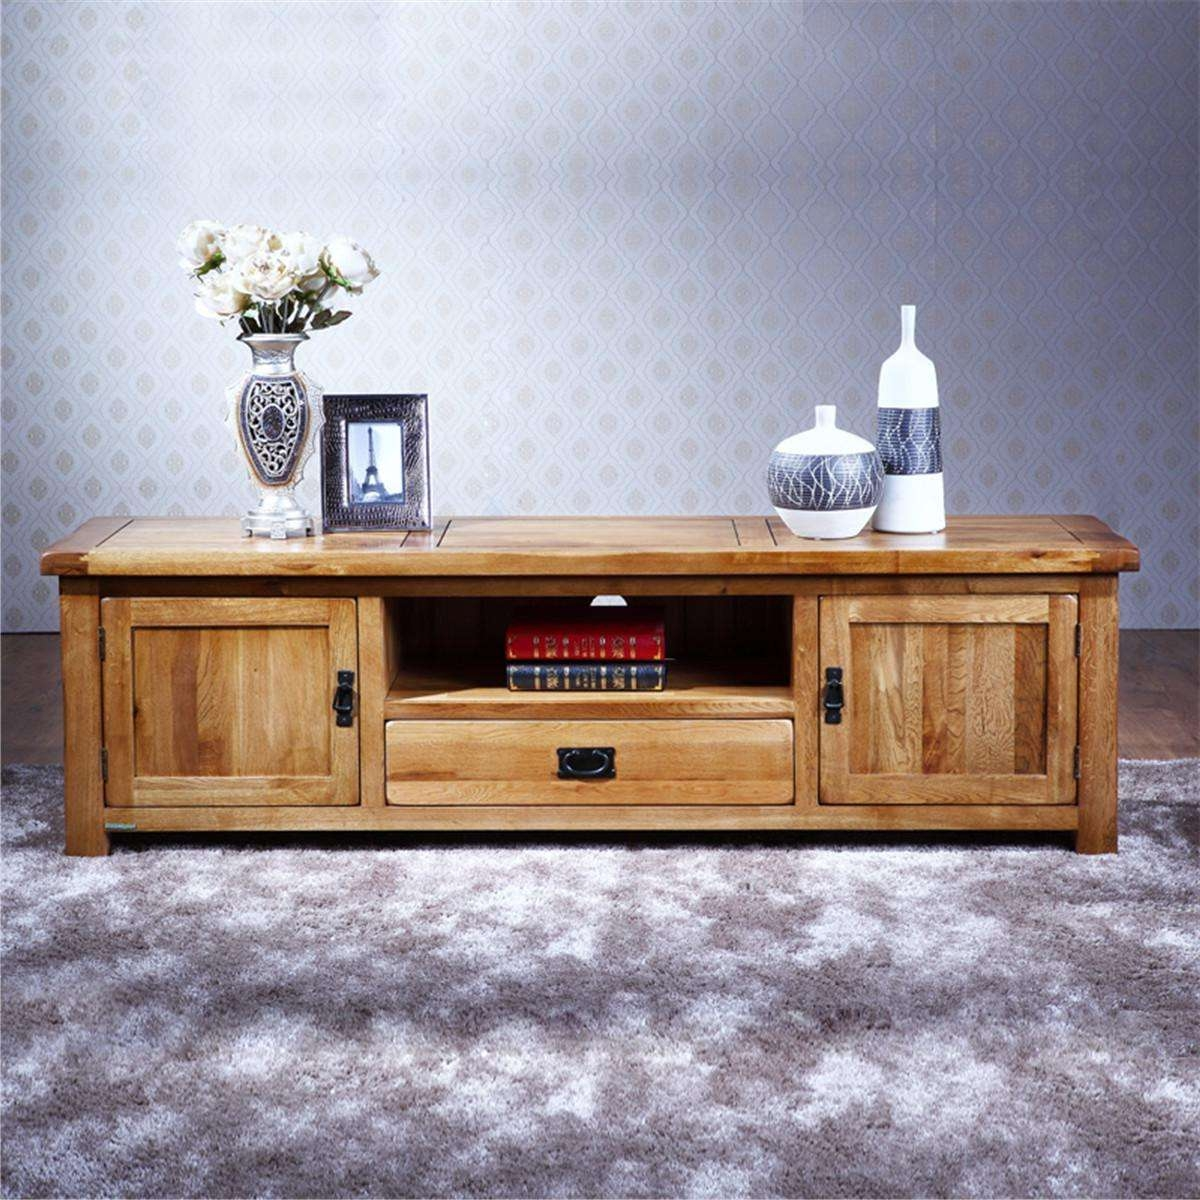 Pure Solid Wood Tv Stand Oak Media Console Inspirations Decoration Within Solid Oak Tv Stands (View 6 of 15)